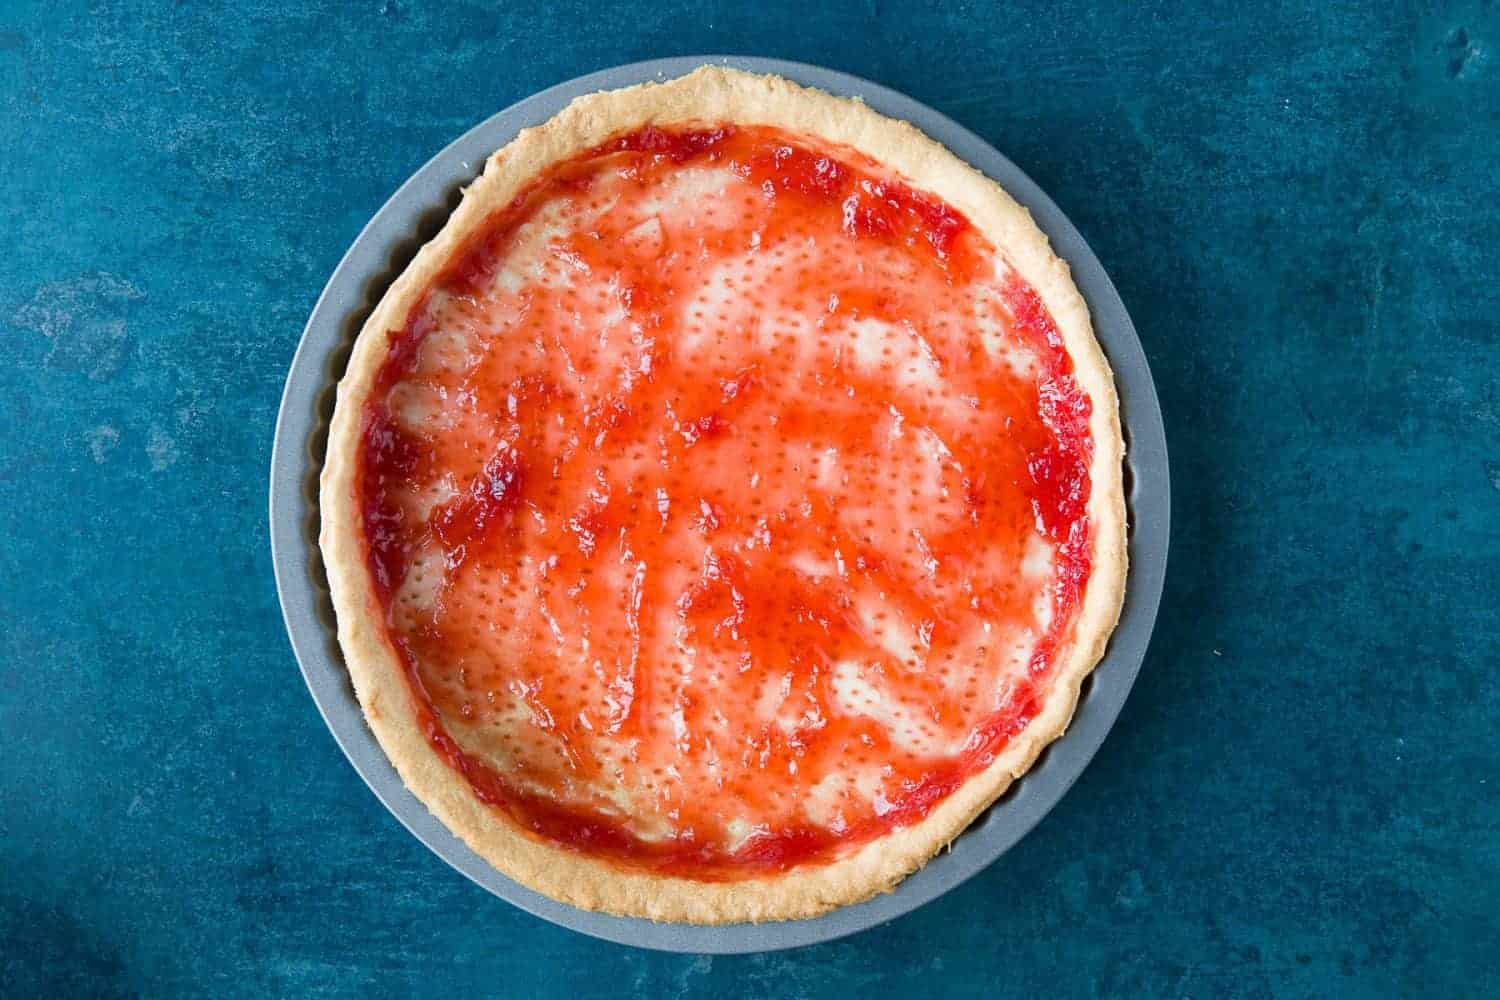 Strawberry jam spread over the top of cooked shortcrust pastry.